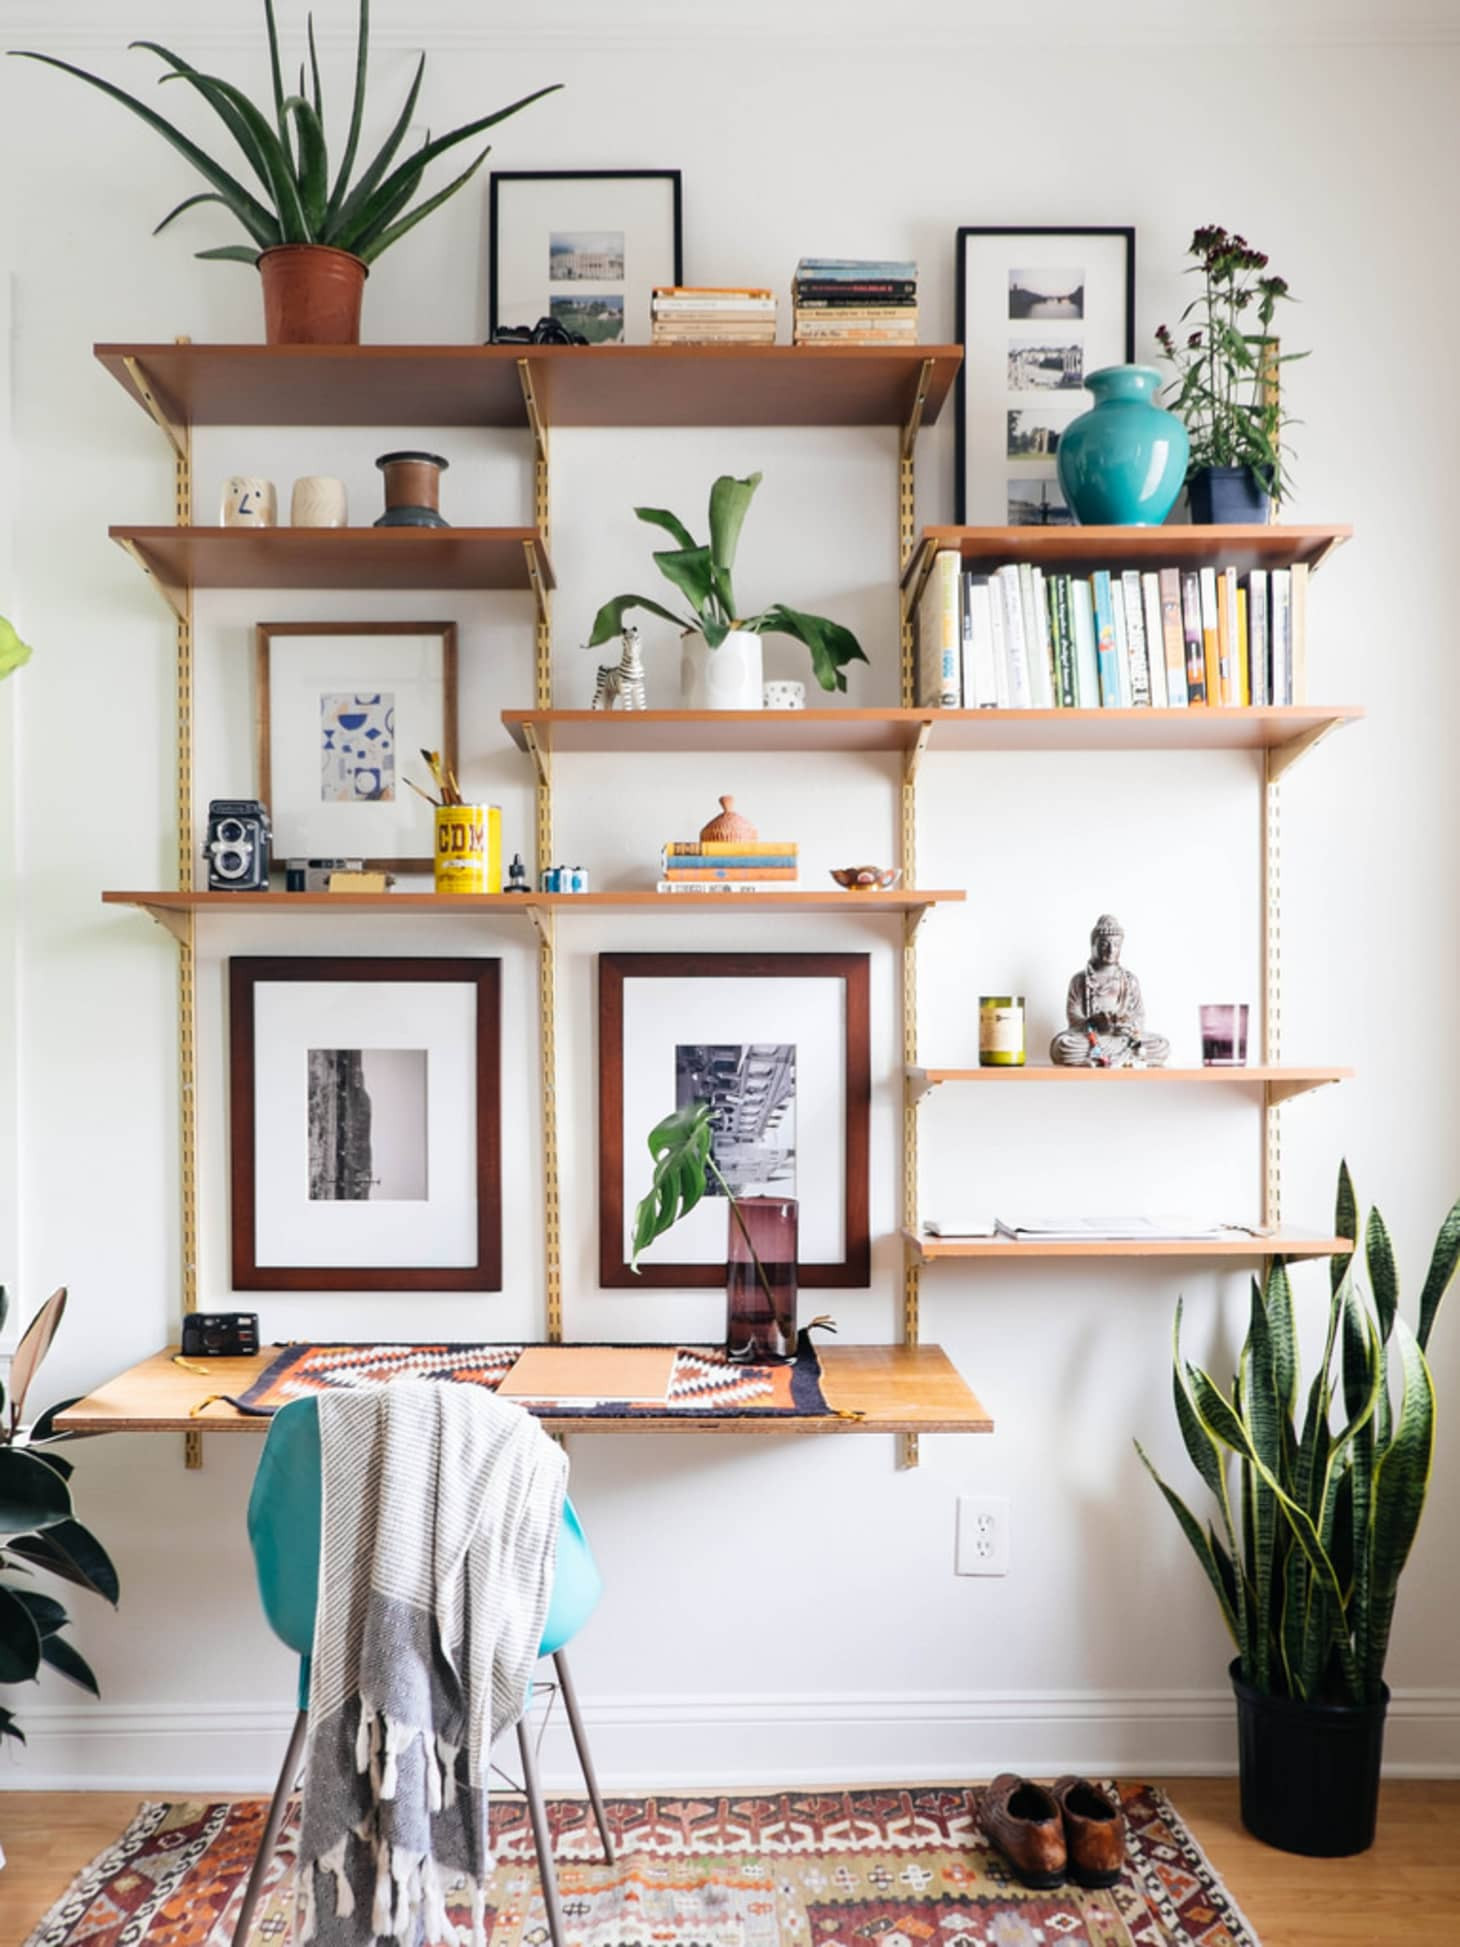 Diy Living Room Ideas  25 the Cheap DIY Ideas to Make Your Living Room Look